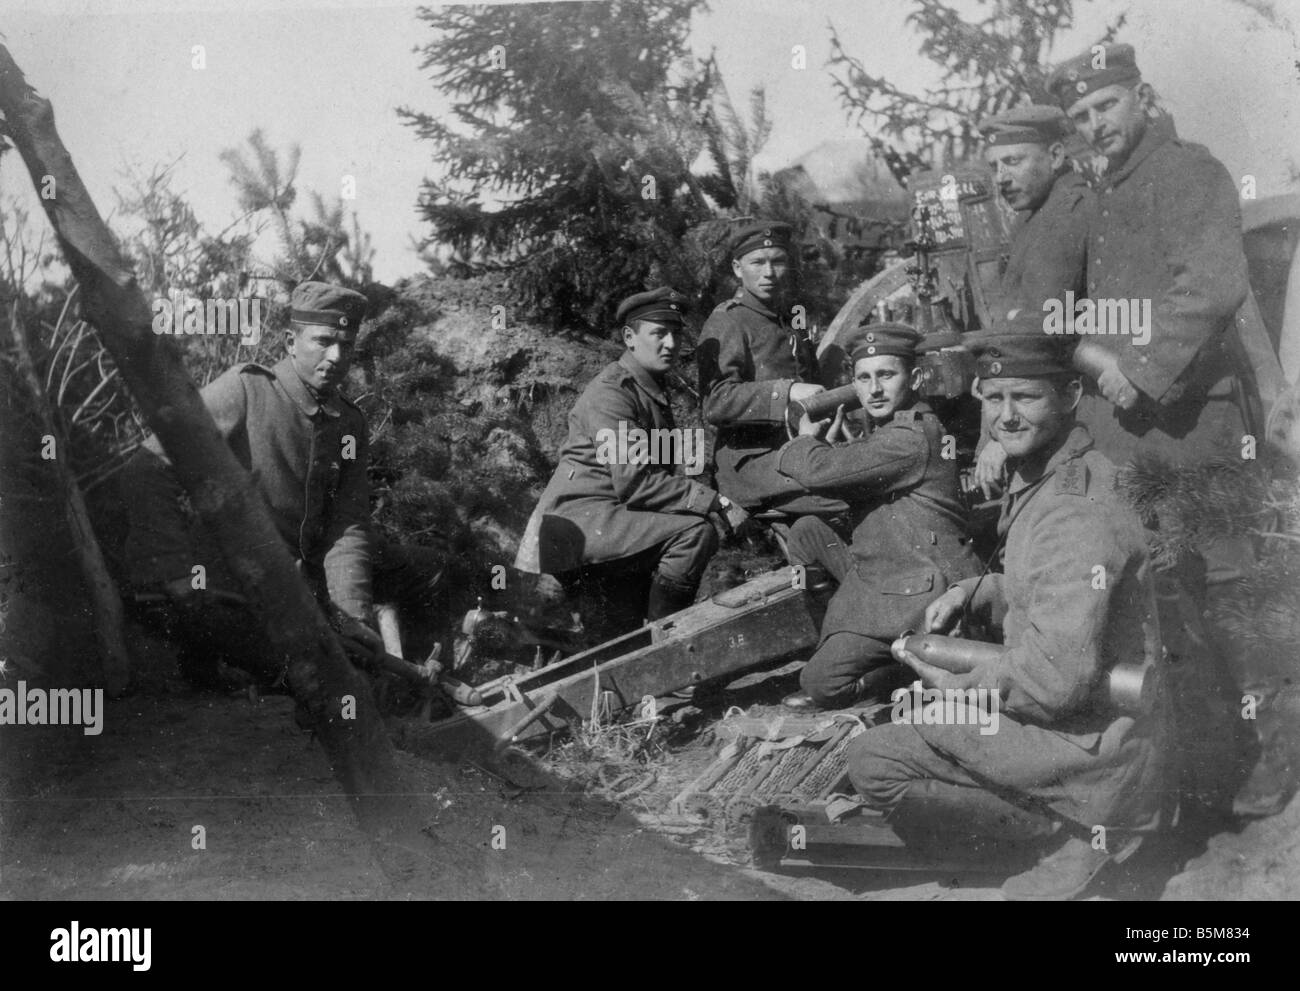 2 G55 A1 1915 19 WWI German ordnance emplacement Photo History First World War 1914 18 German ordnance emplacement - Stock Image